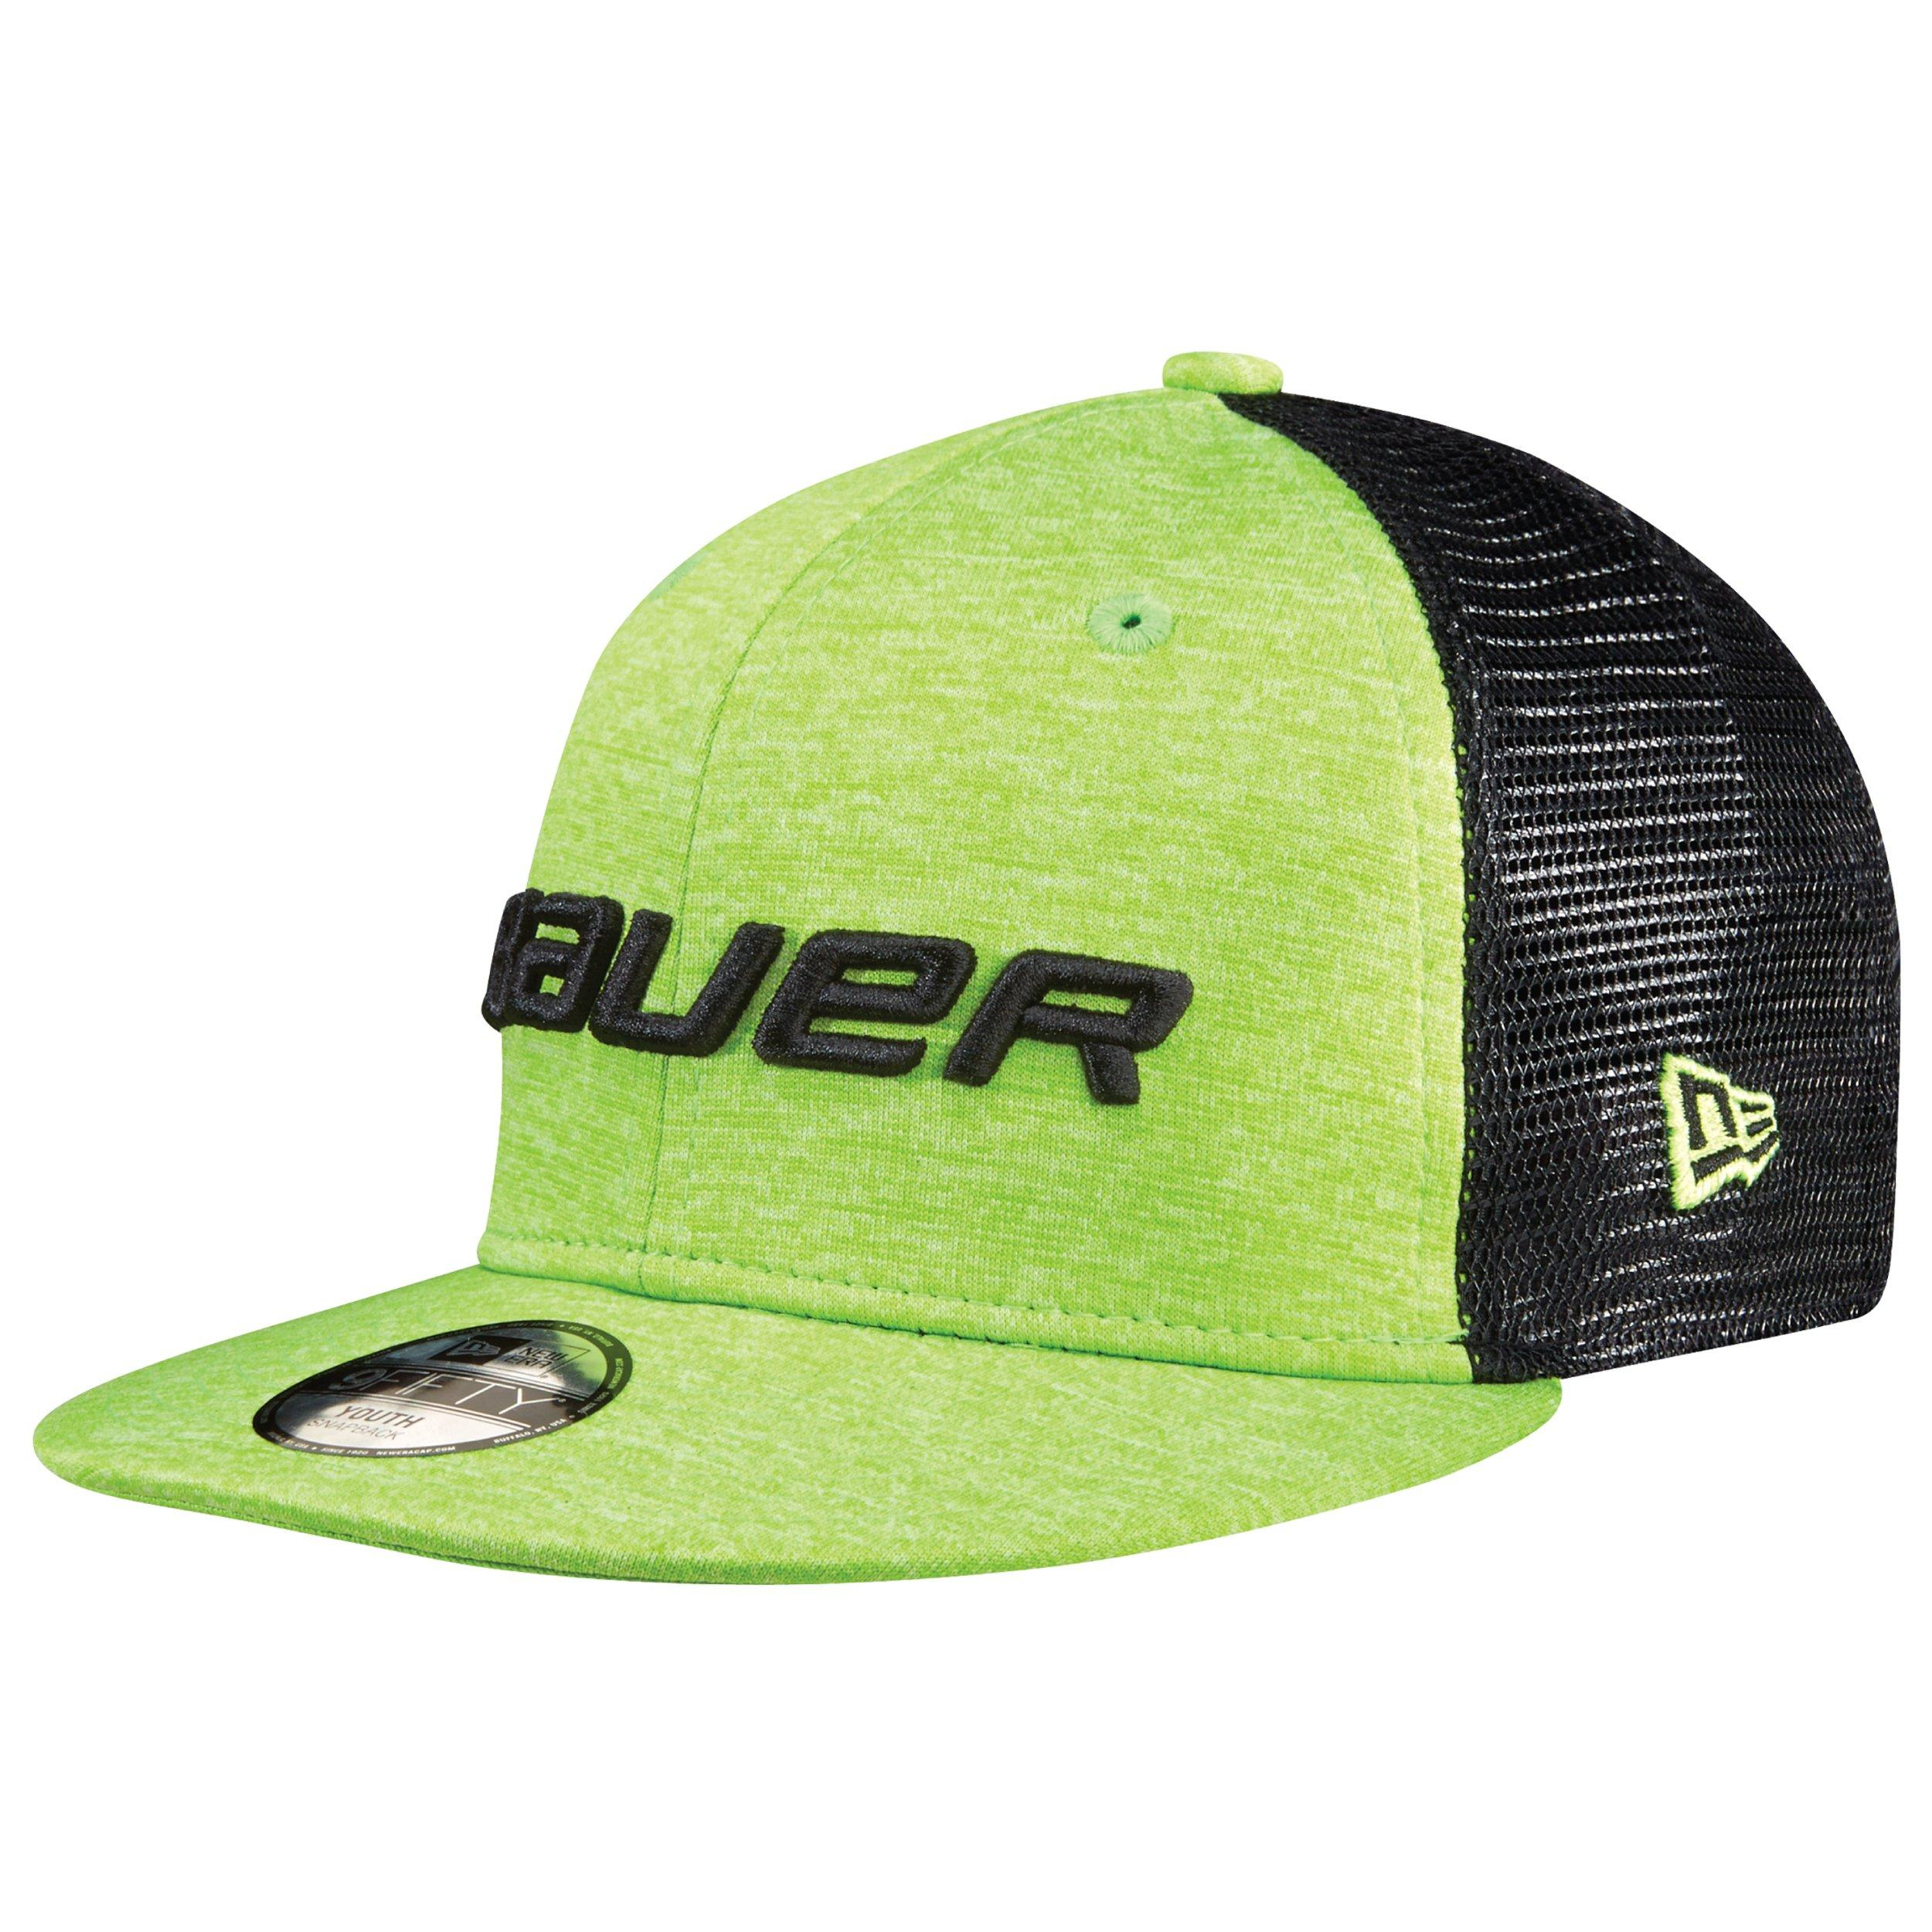 BAUER / New Era® 9FIFTY® Color Pop Adjustable Cap Youth,,moyen